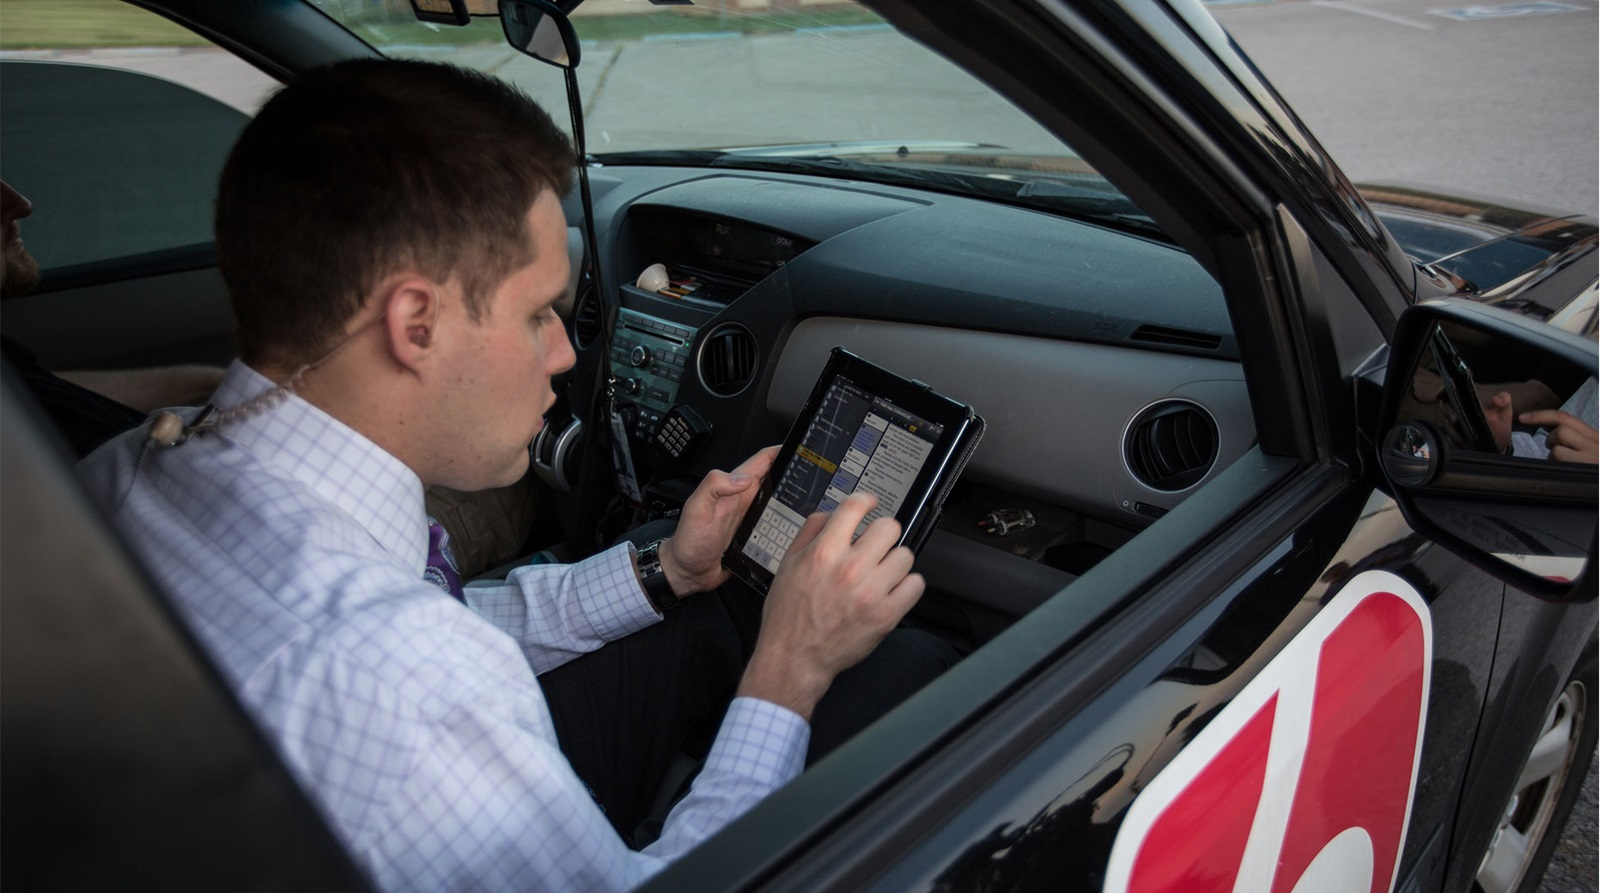 A field reporter sitting in a car uses a mobile app for news production.